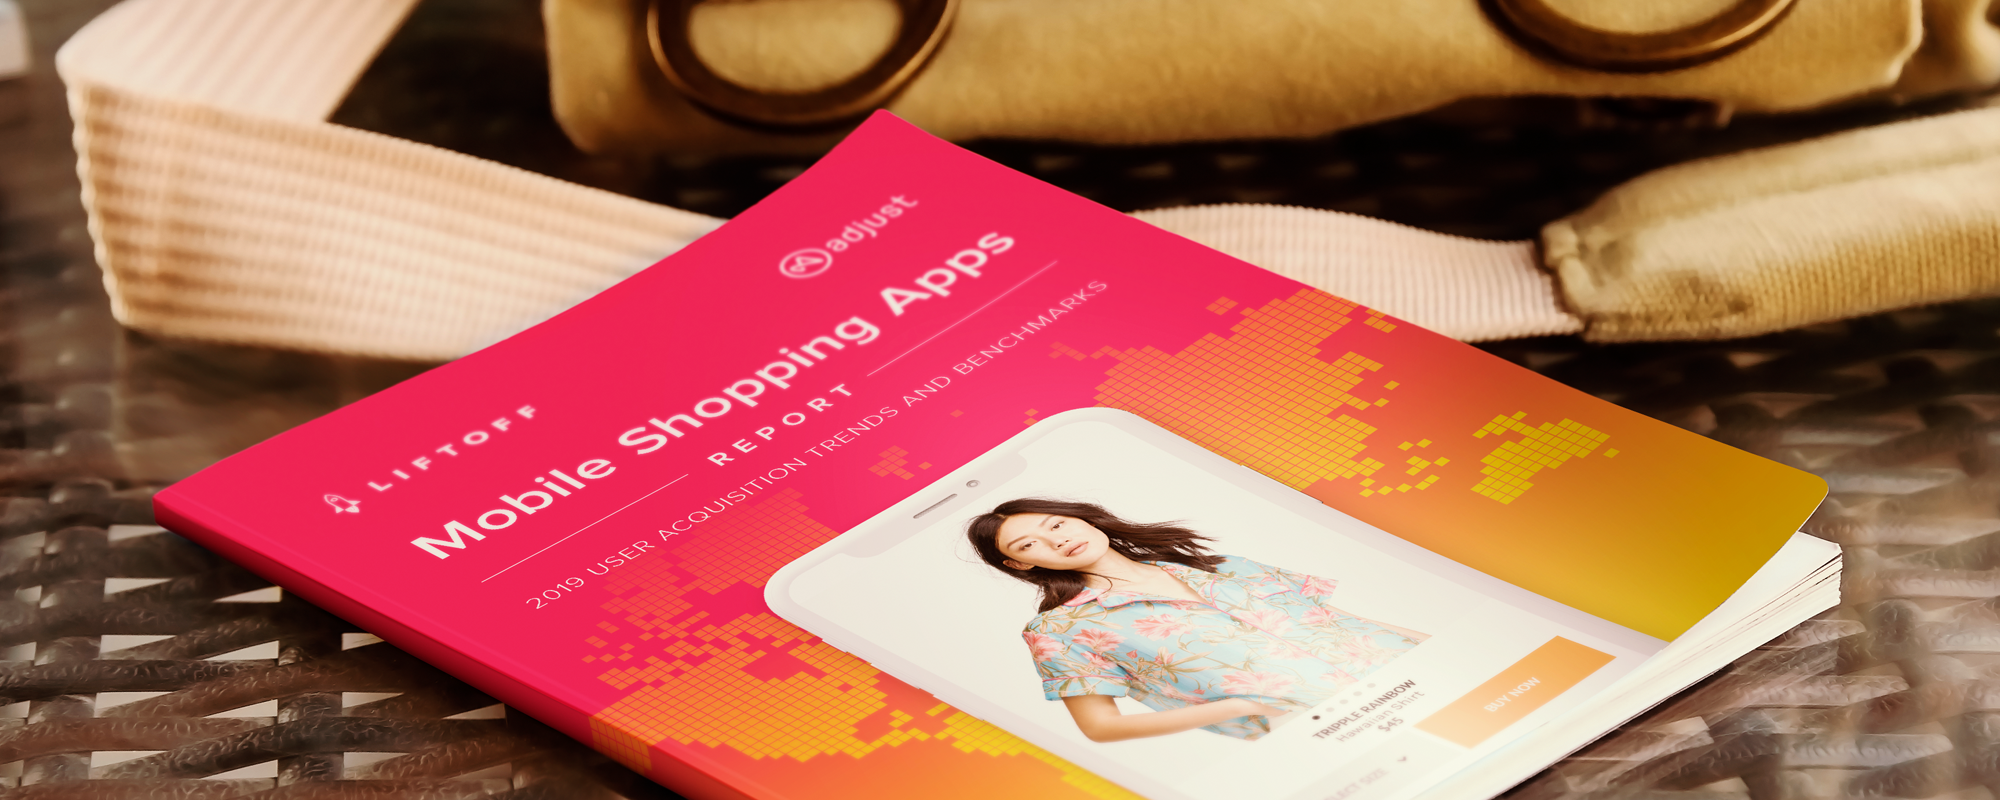 2019 Mobile Shopping Apps Report | Adjust